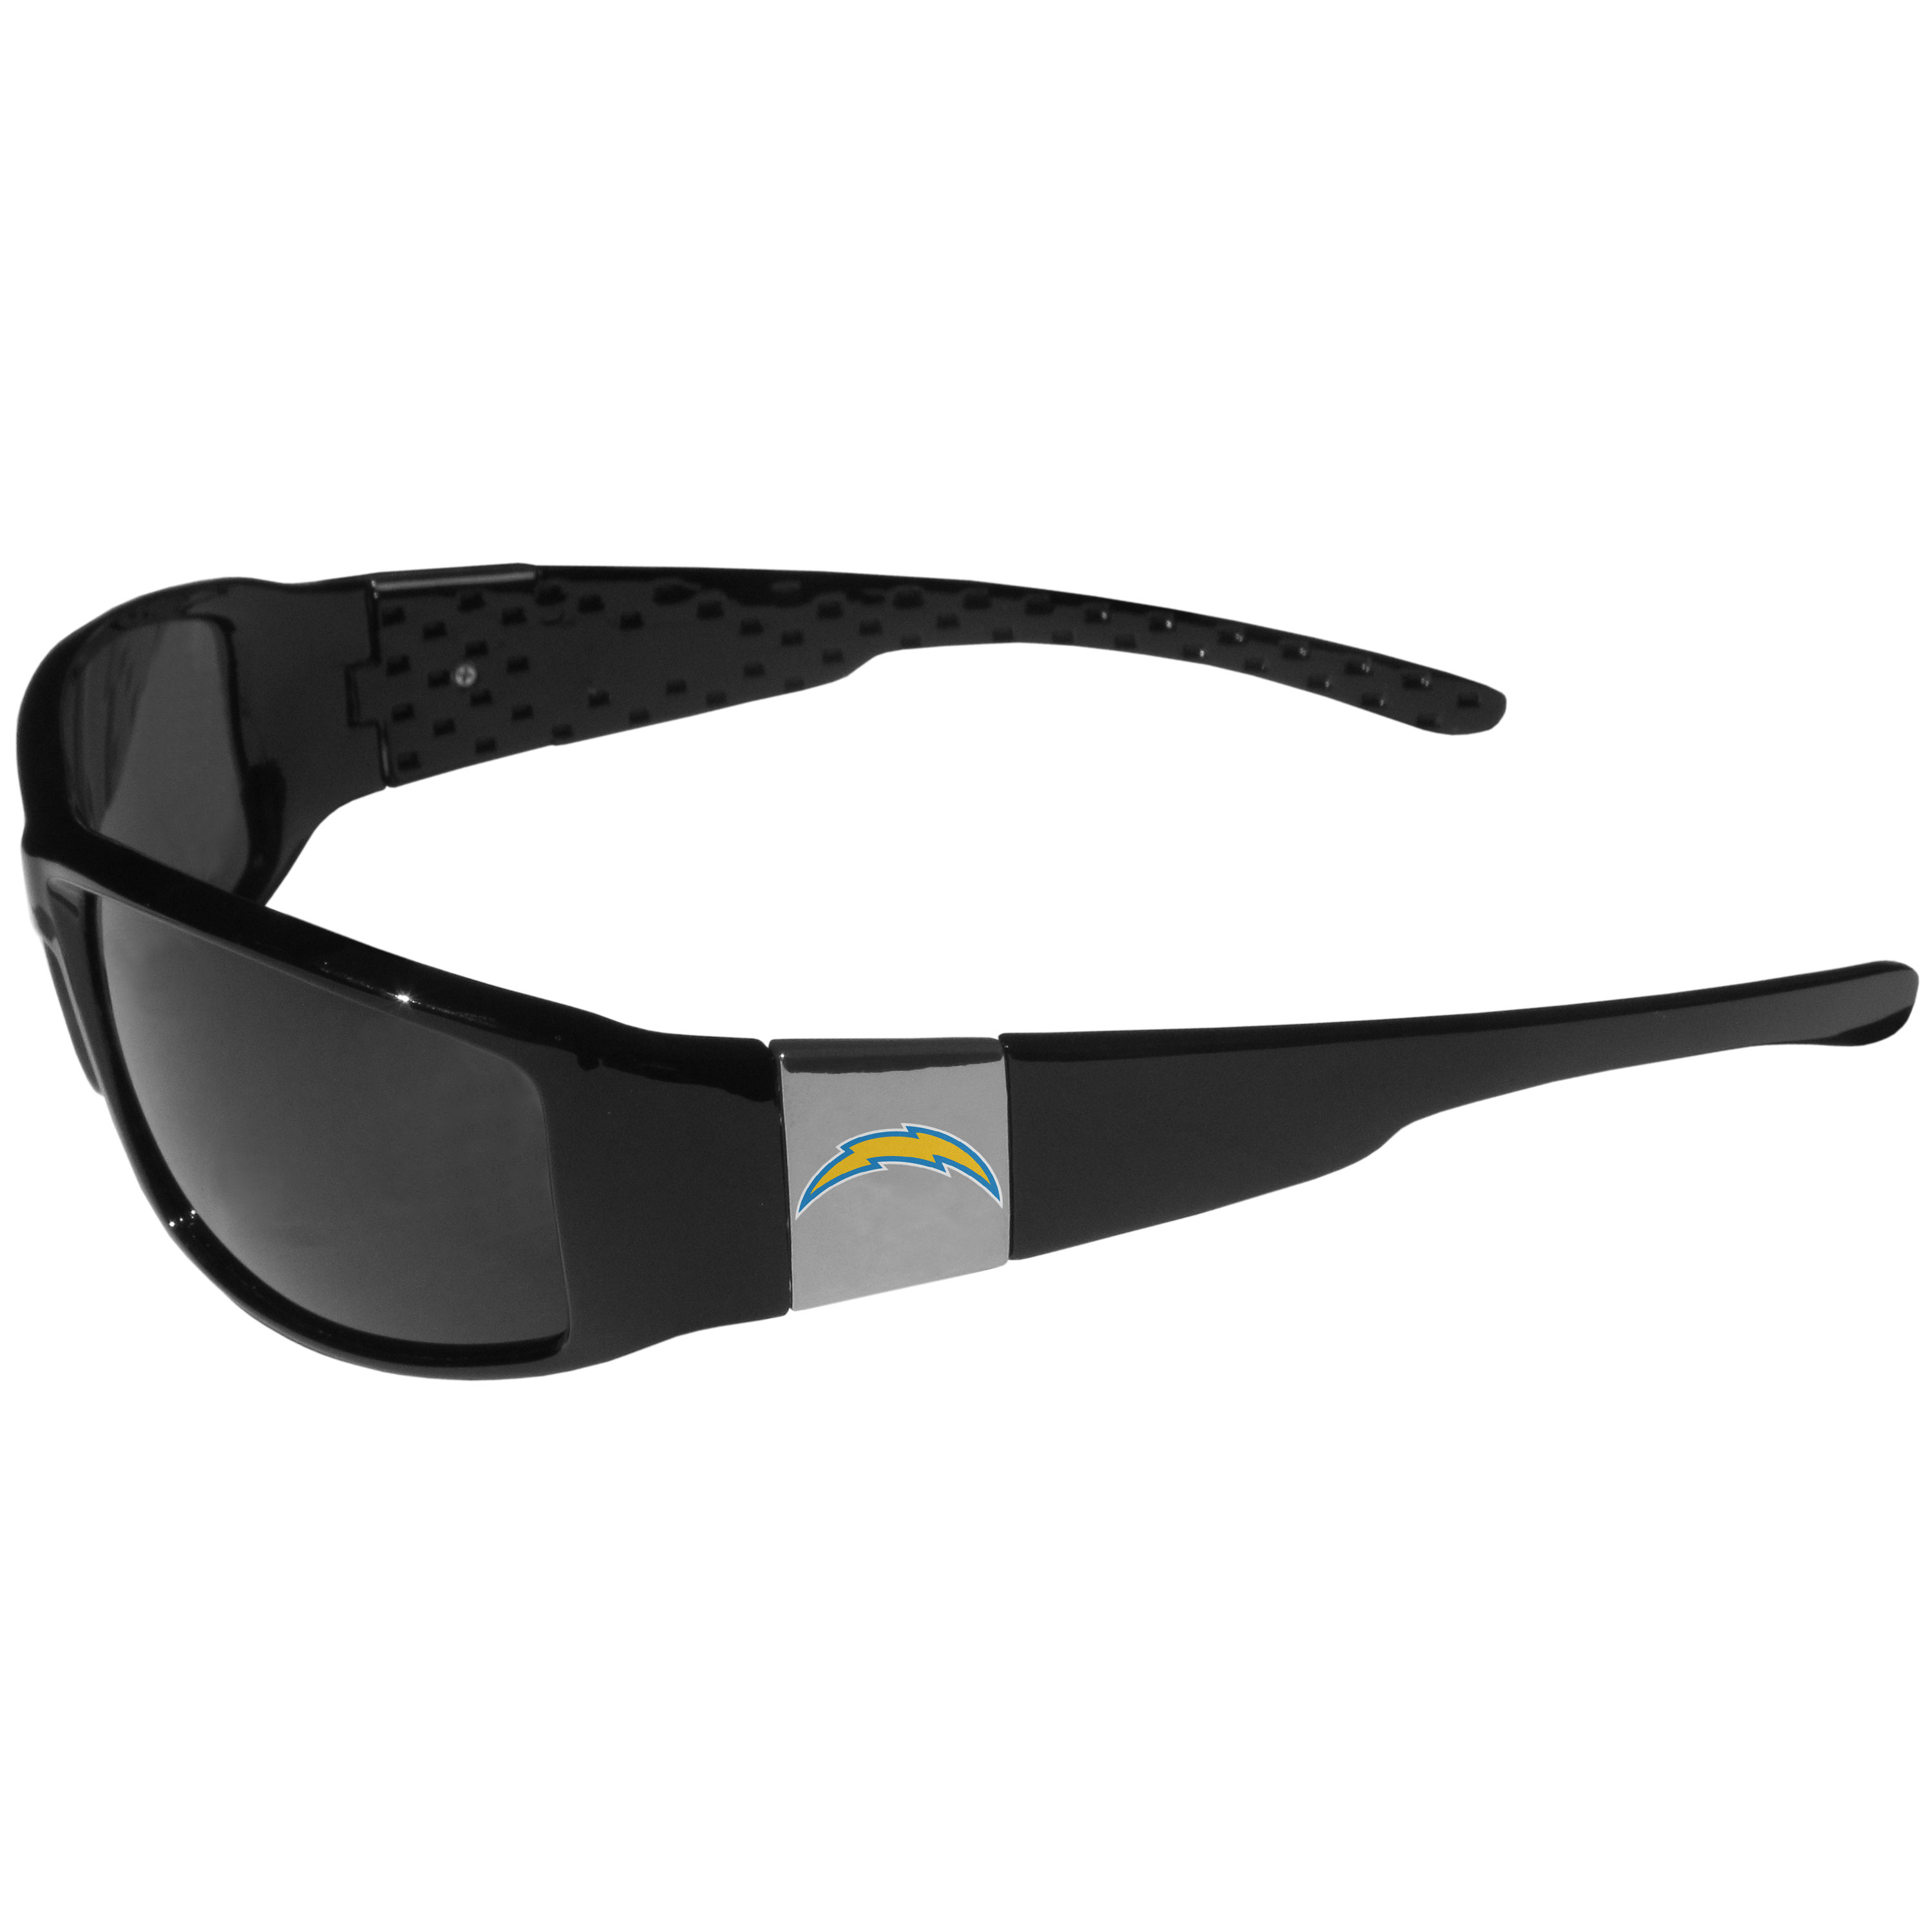 Los Angeles Chargers Chrome Wrap Sunglasses - These designer inspired frames have a sleek look in all black with high-polish chrome Los Angeles Chargers shields on each arm with a printed logo. The shades are perfect for any outdoor activity like; golfing, driving, hiking, fishing or cheering on the team at a tailgating event or at a home game day BBQ with a lens rating of 100% UVA/UVB for maximum UV protection. The high-quality frames are as durable as they are fashionable and with their classic look they are the perfect fan accessory that can be worn everyday for every occasion.